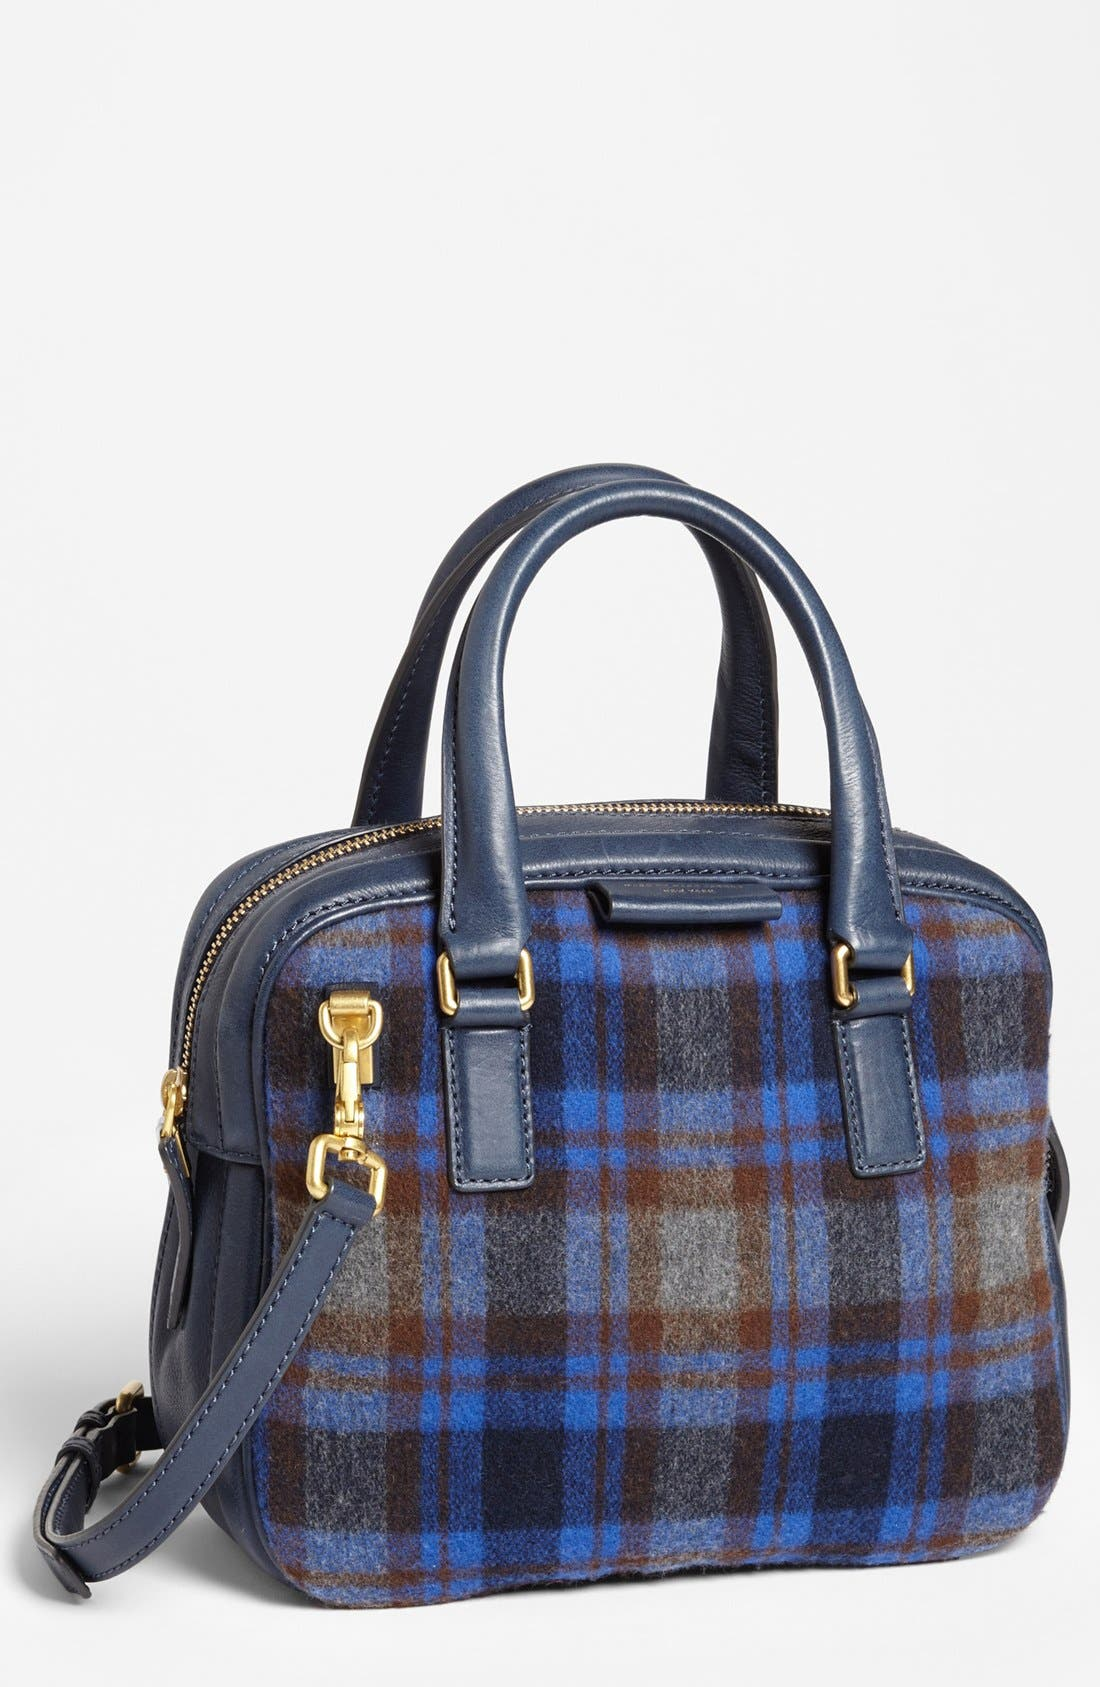 Main Image - MARC BY MARC JACOBS 'Clover' Satchel